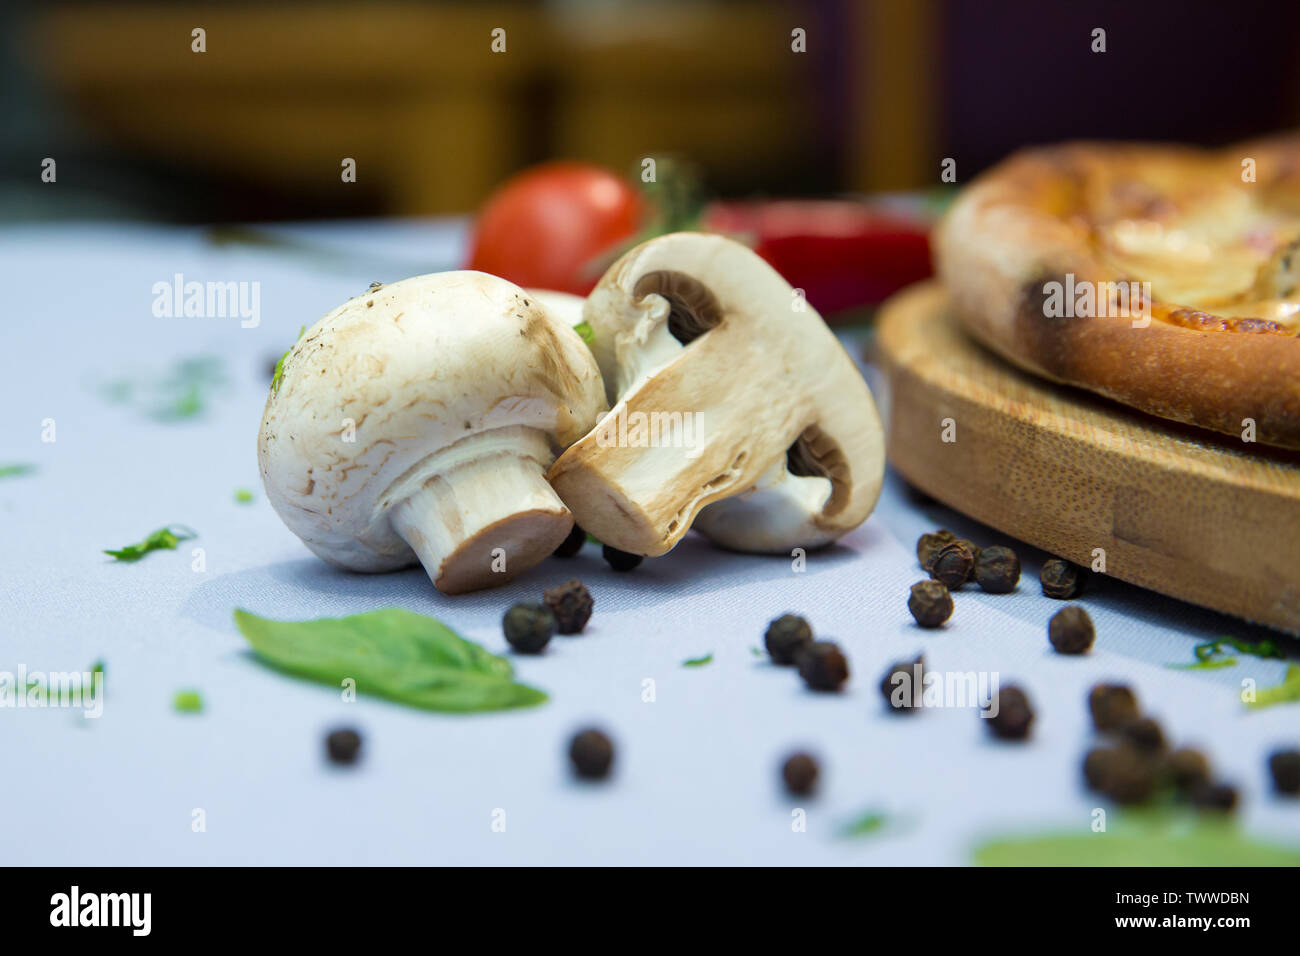 Raw mushrooms in a bowl on the table bunch dill and parsley . White mushrooms champignons, dill, parsley, old wooden table, rustic style, selective fo - Stock Image